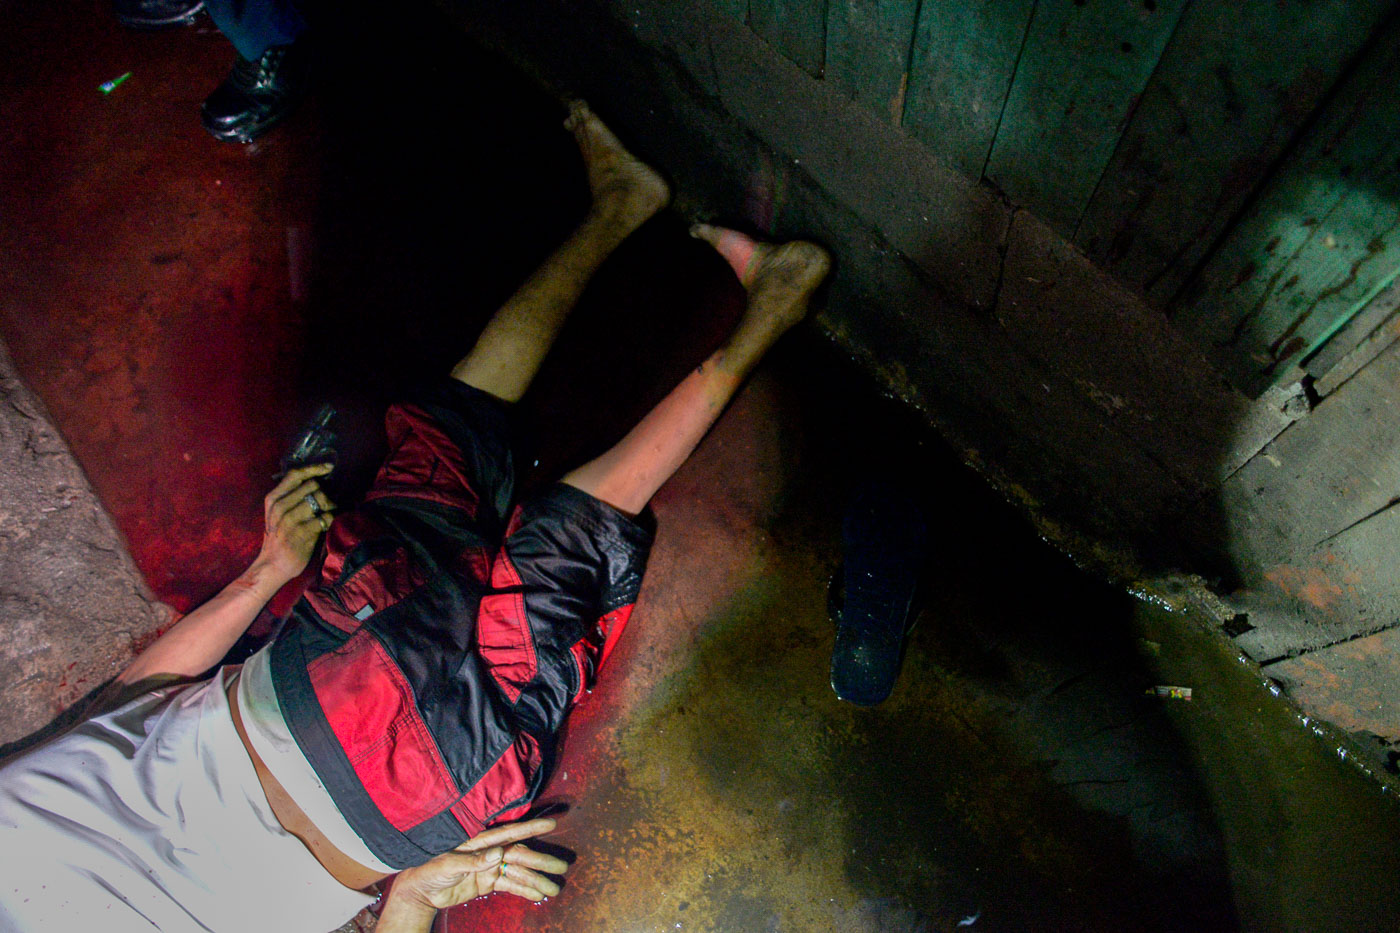 NANLABAN? Police identifies a body of an alleged drug suspect killed in a shoot out in Brgy. 105 Tondo, Manila on July 21, 2016. Photo by Leanne Jazul/Rappler